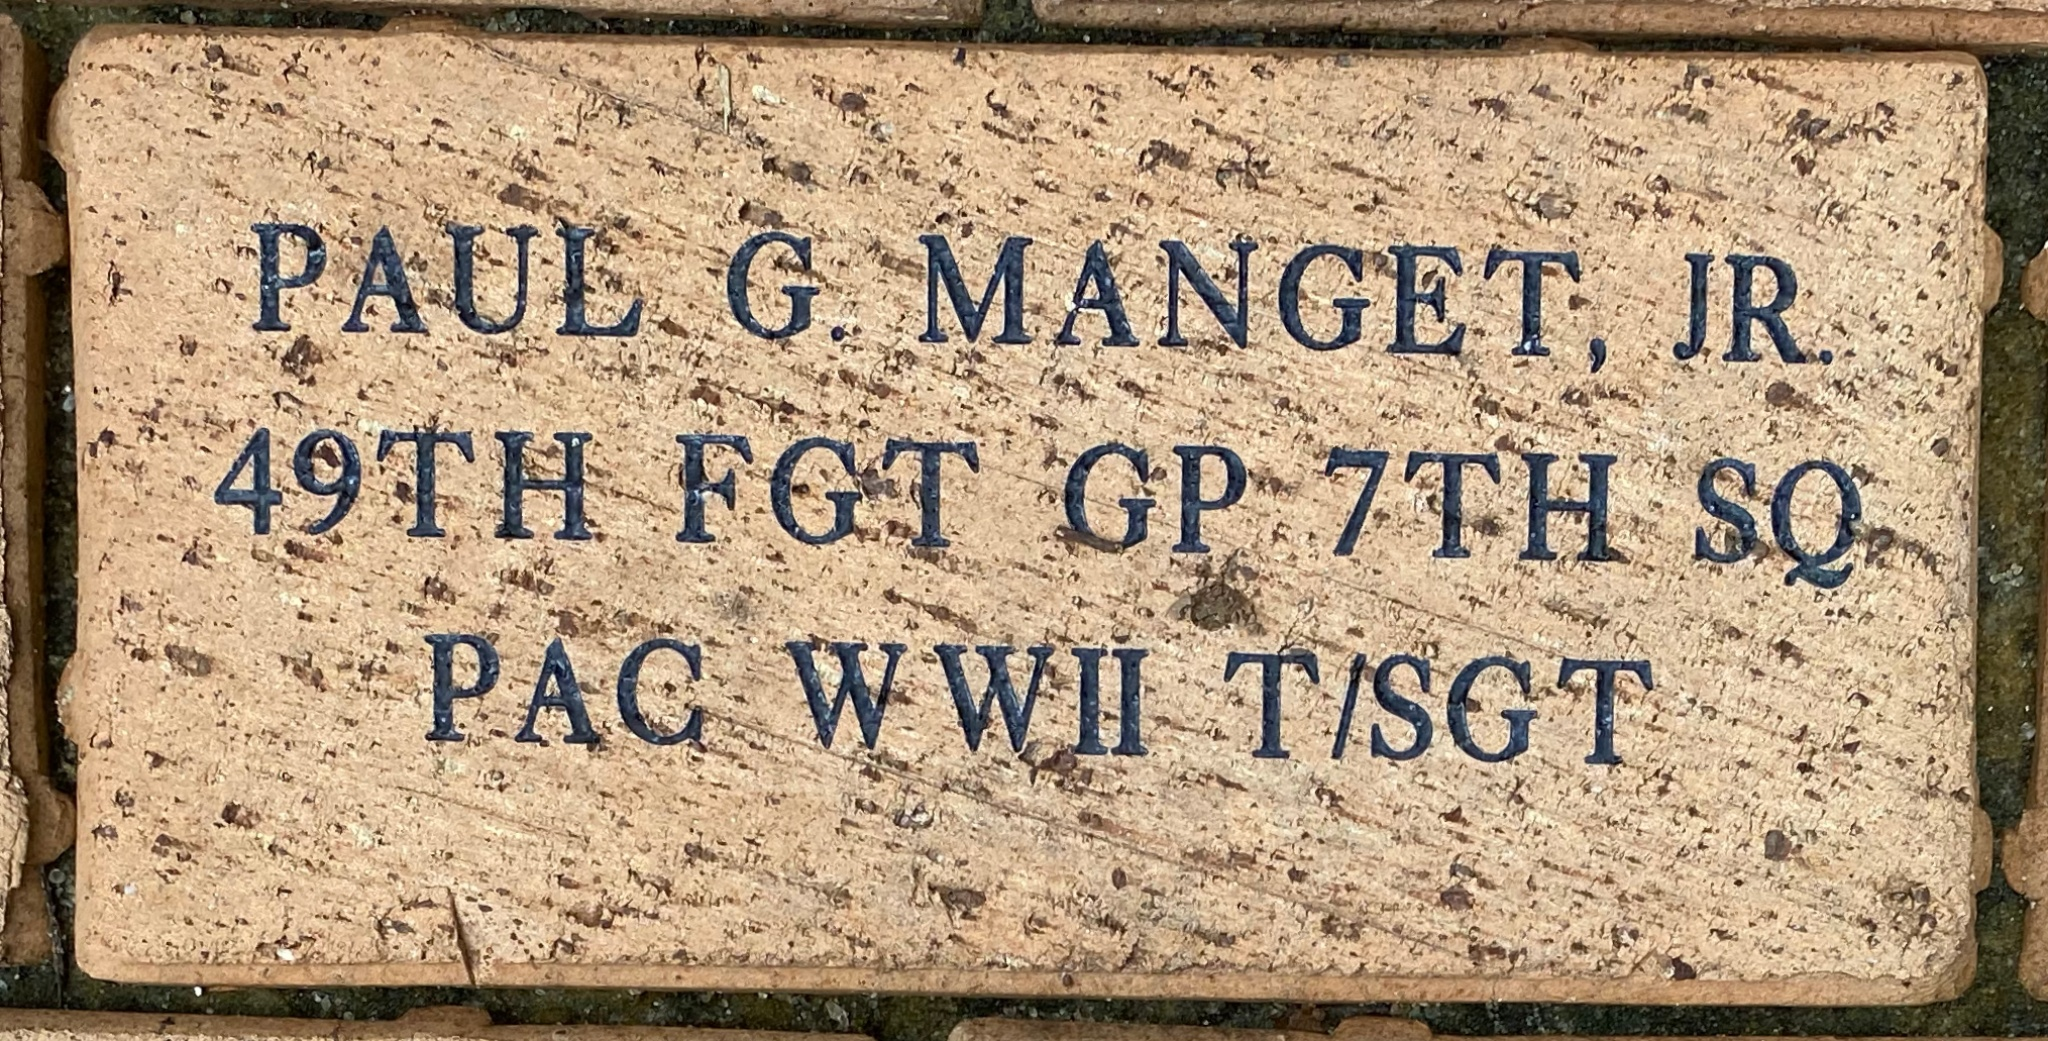 PAUL G. MANGET, JR 49TH FGT GP 7TH SQ PAC WWII T/SGT